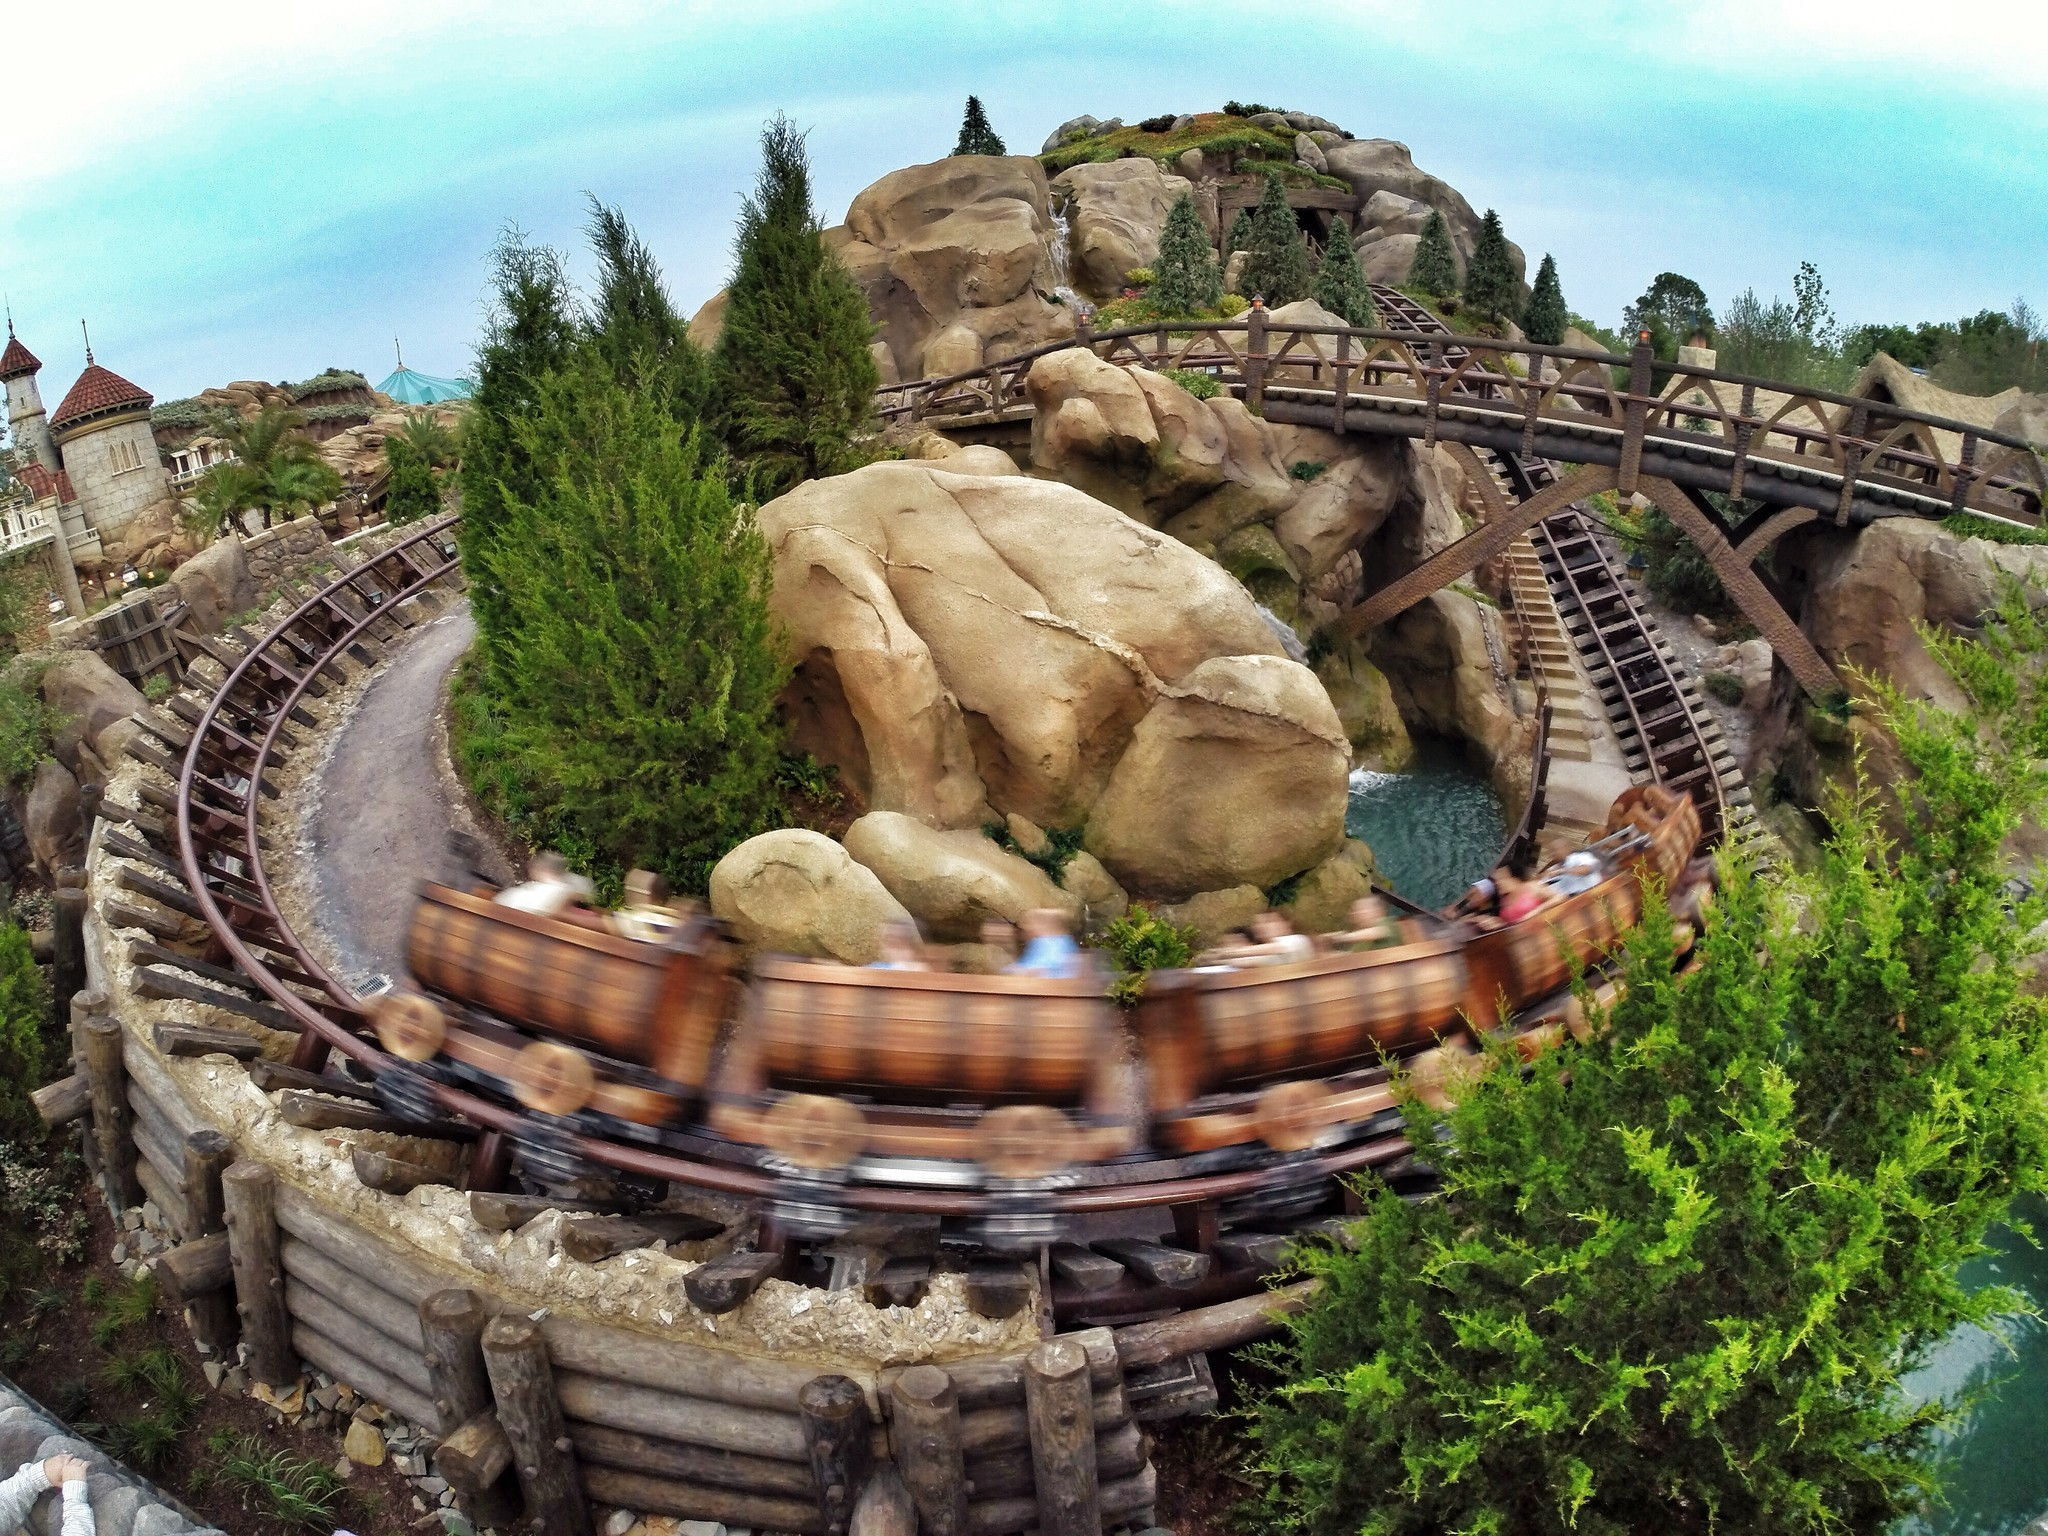 dwarfs mine train disney coaster seven disneyland roller ride orlando magic kingdom disneyworld walt parks theme park sentinel angeles los